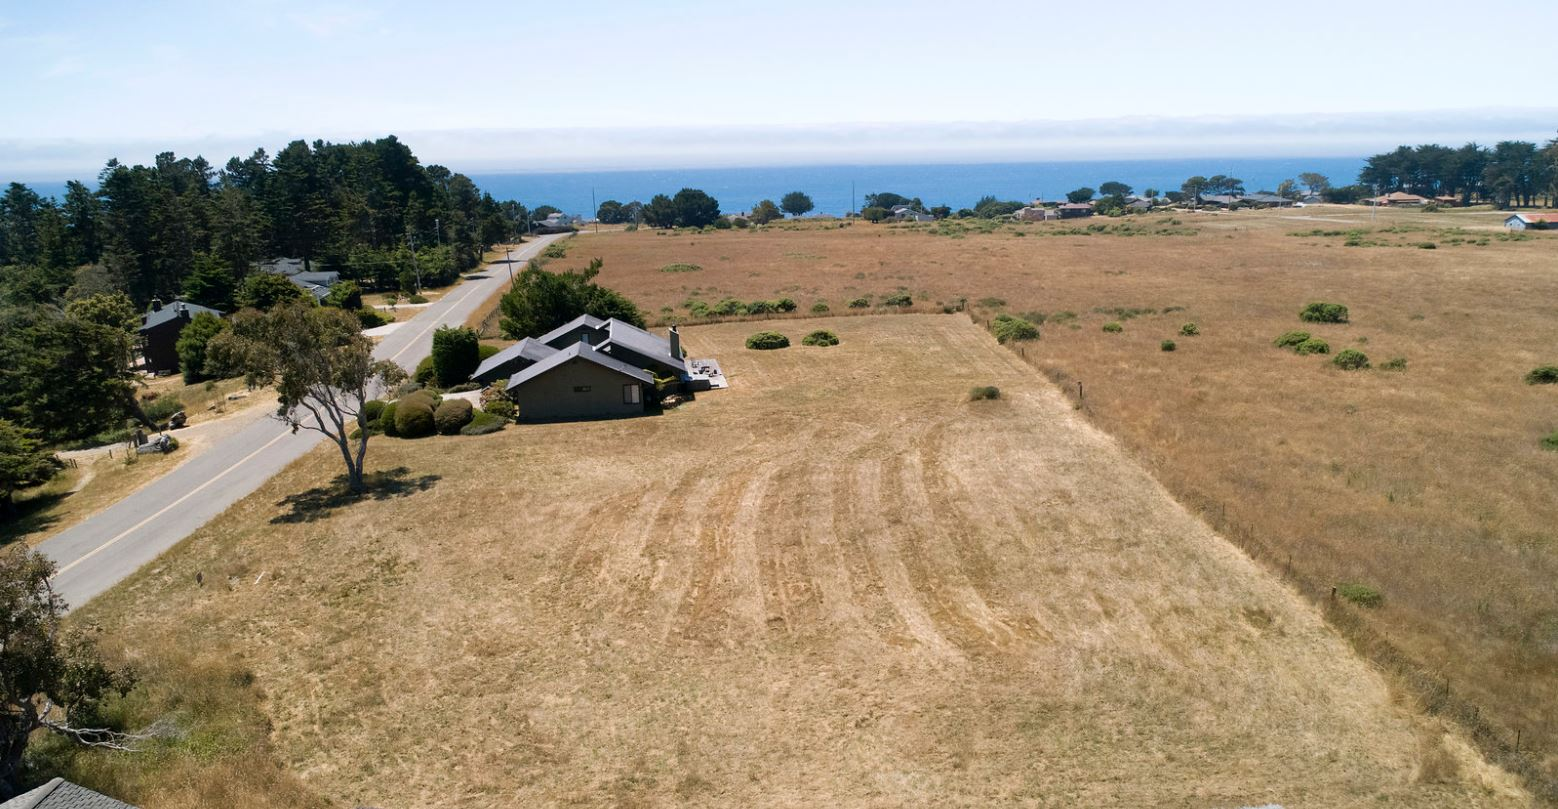 Aerial view of house surrounded by grassy brown lawn with ocean in background